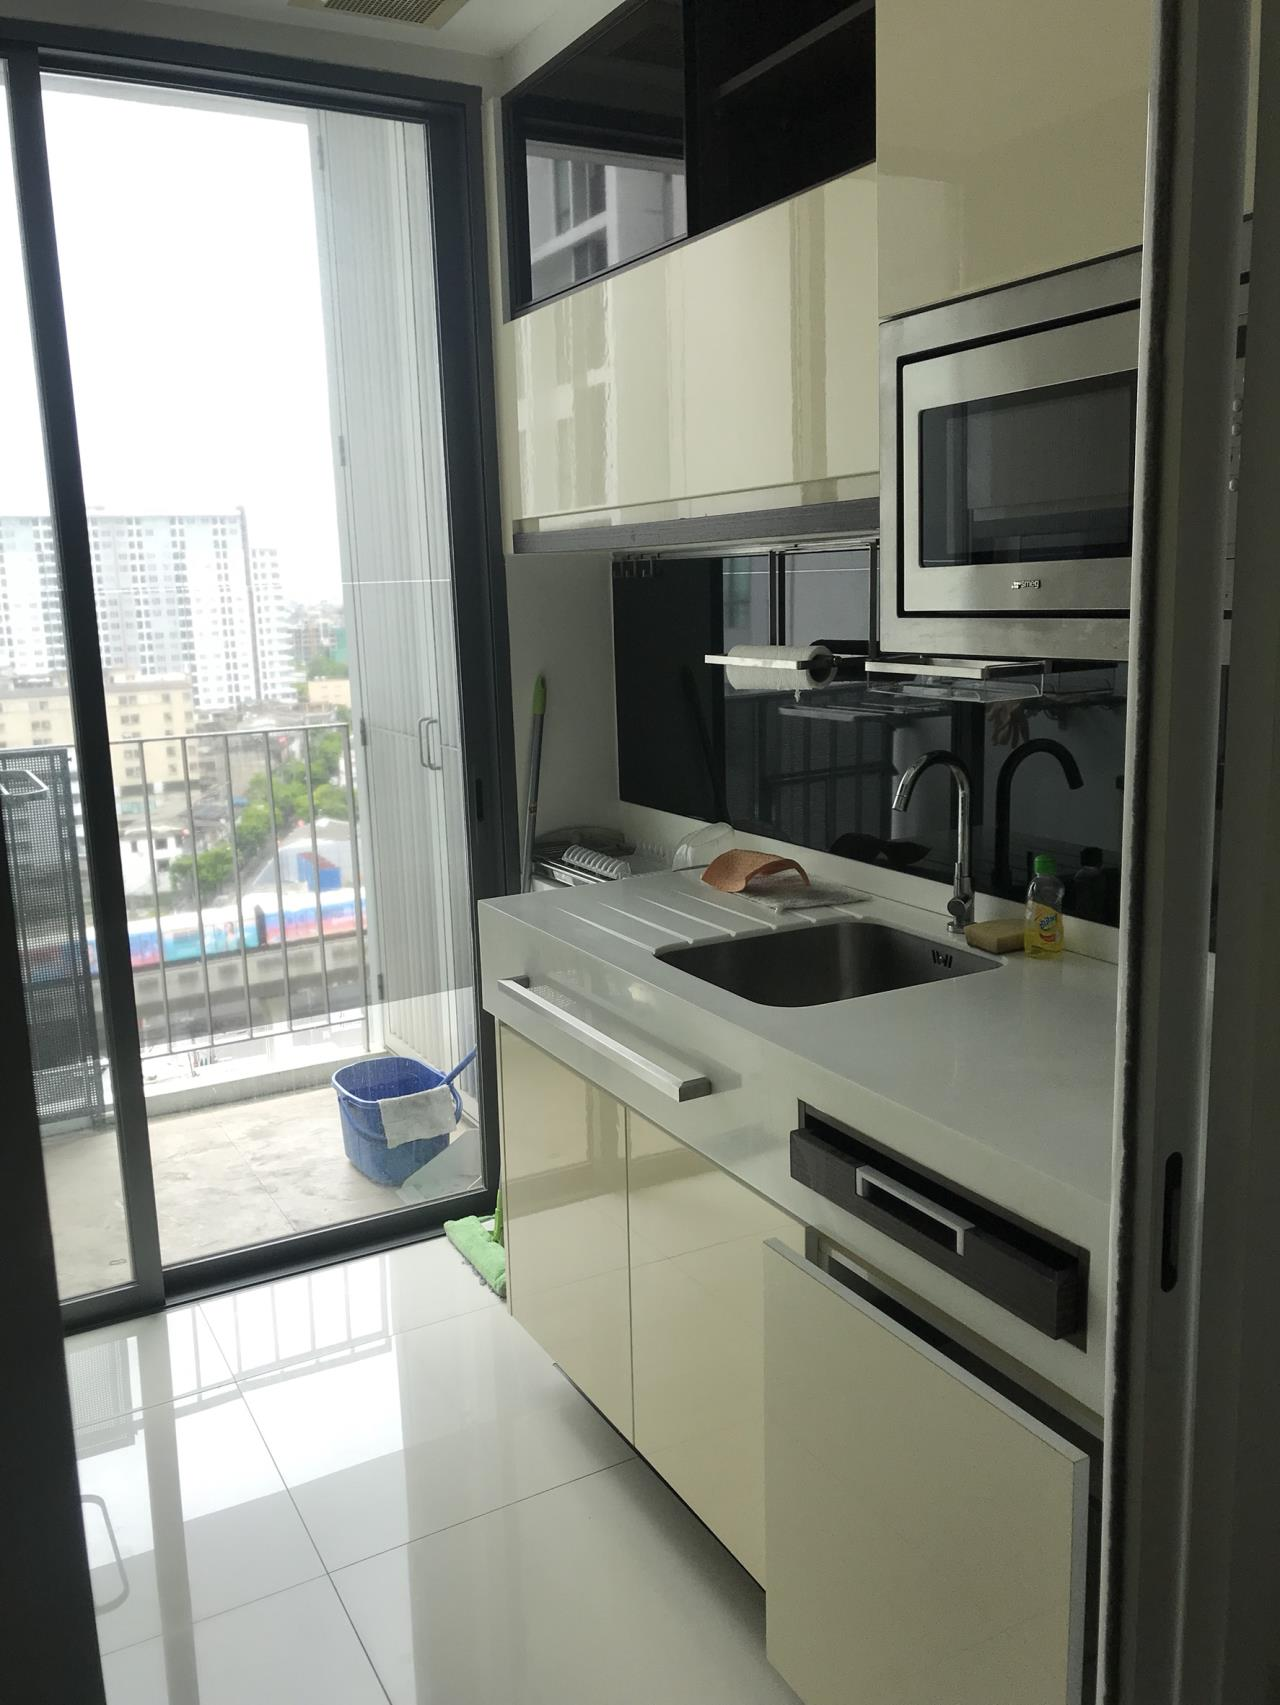 Quality Life Property Agency's RENT **** WITH TENANT ! THE ROOM SUKHUMVIT 62 | 1 BED 1 BATH | 45 SQ. M. 12 A FOOR 8